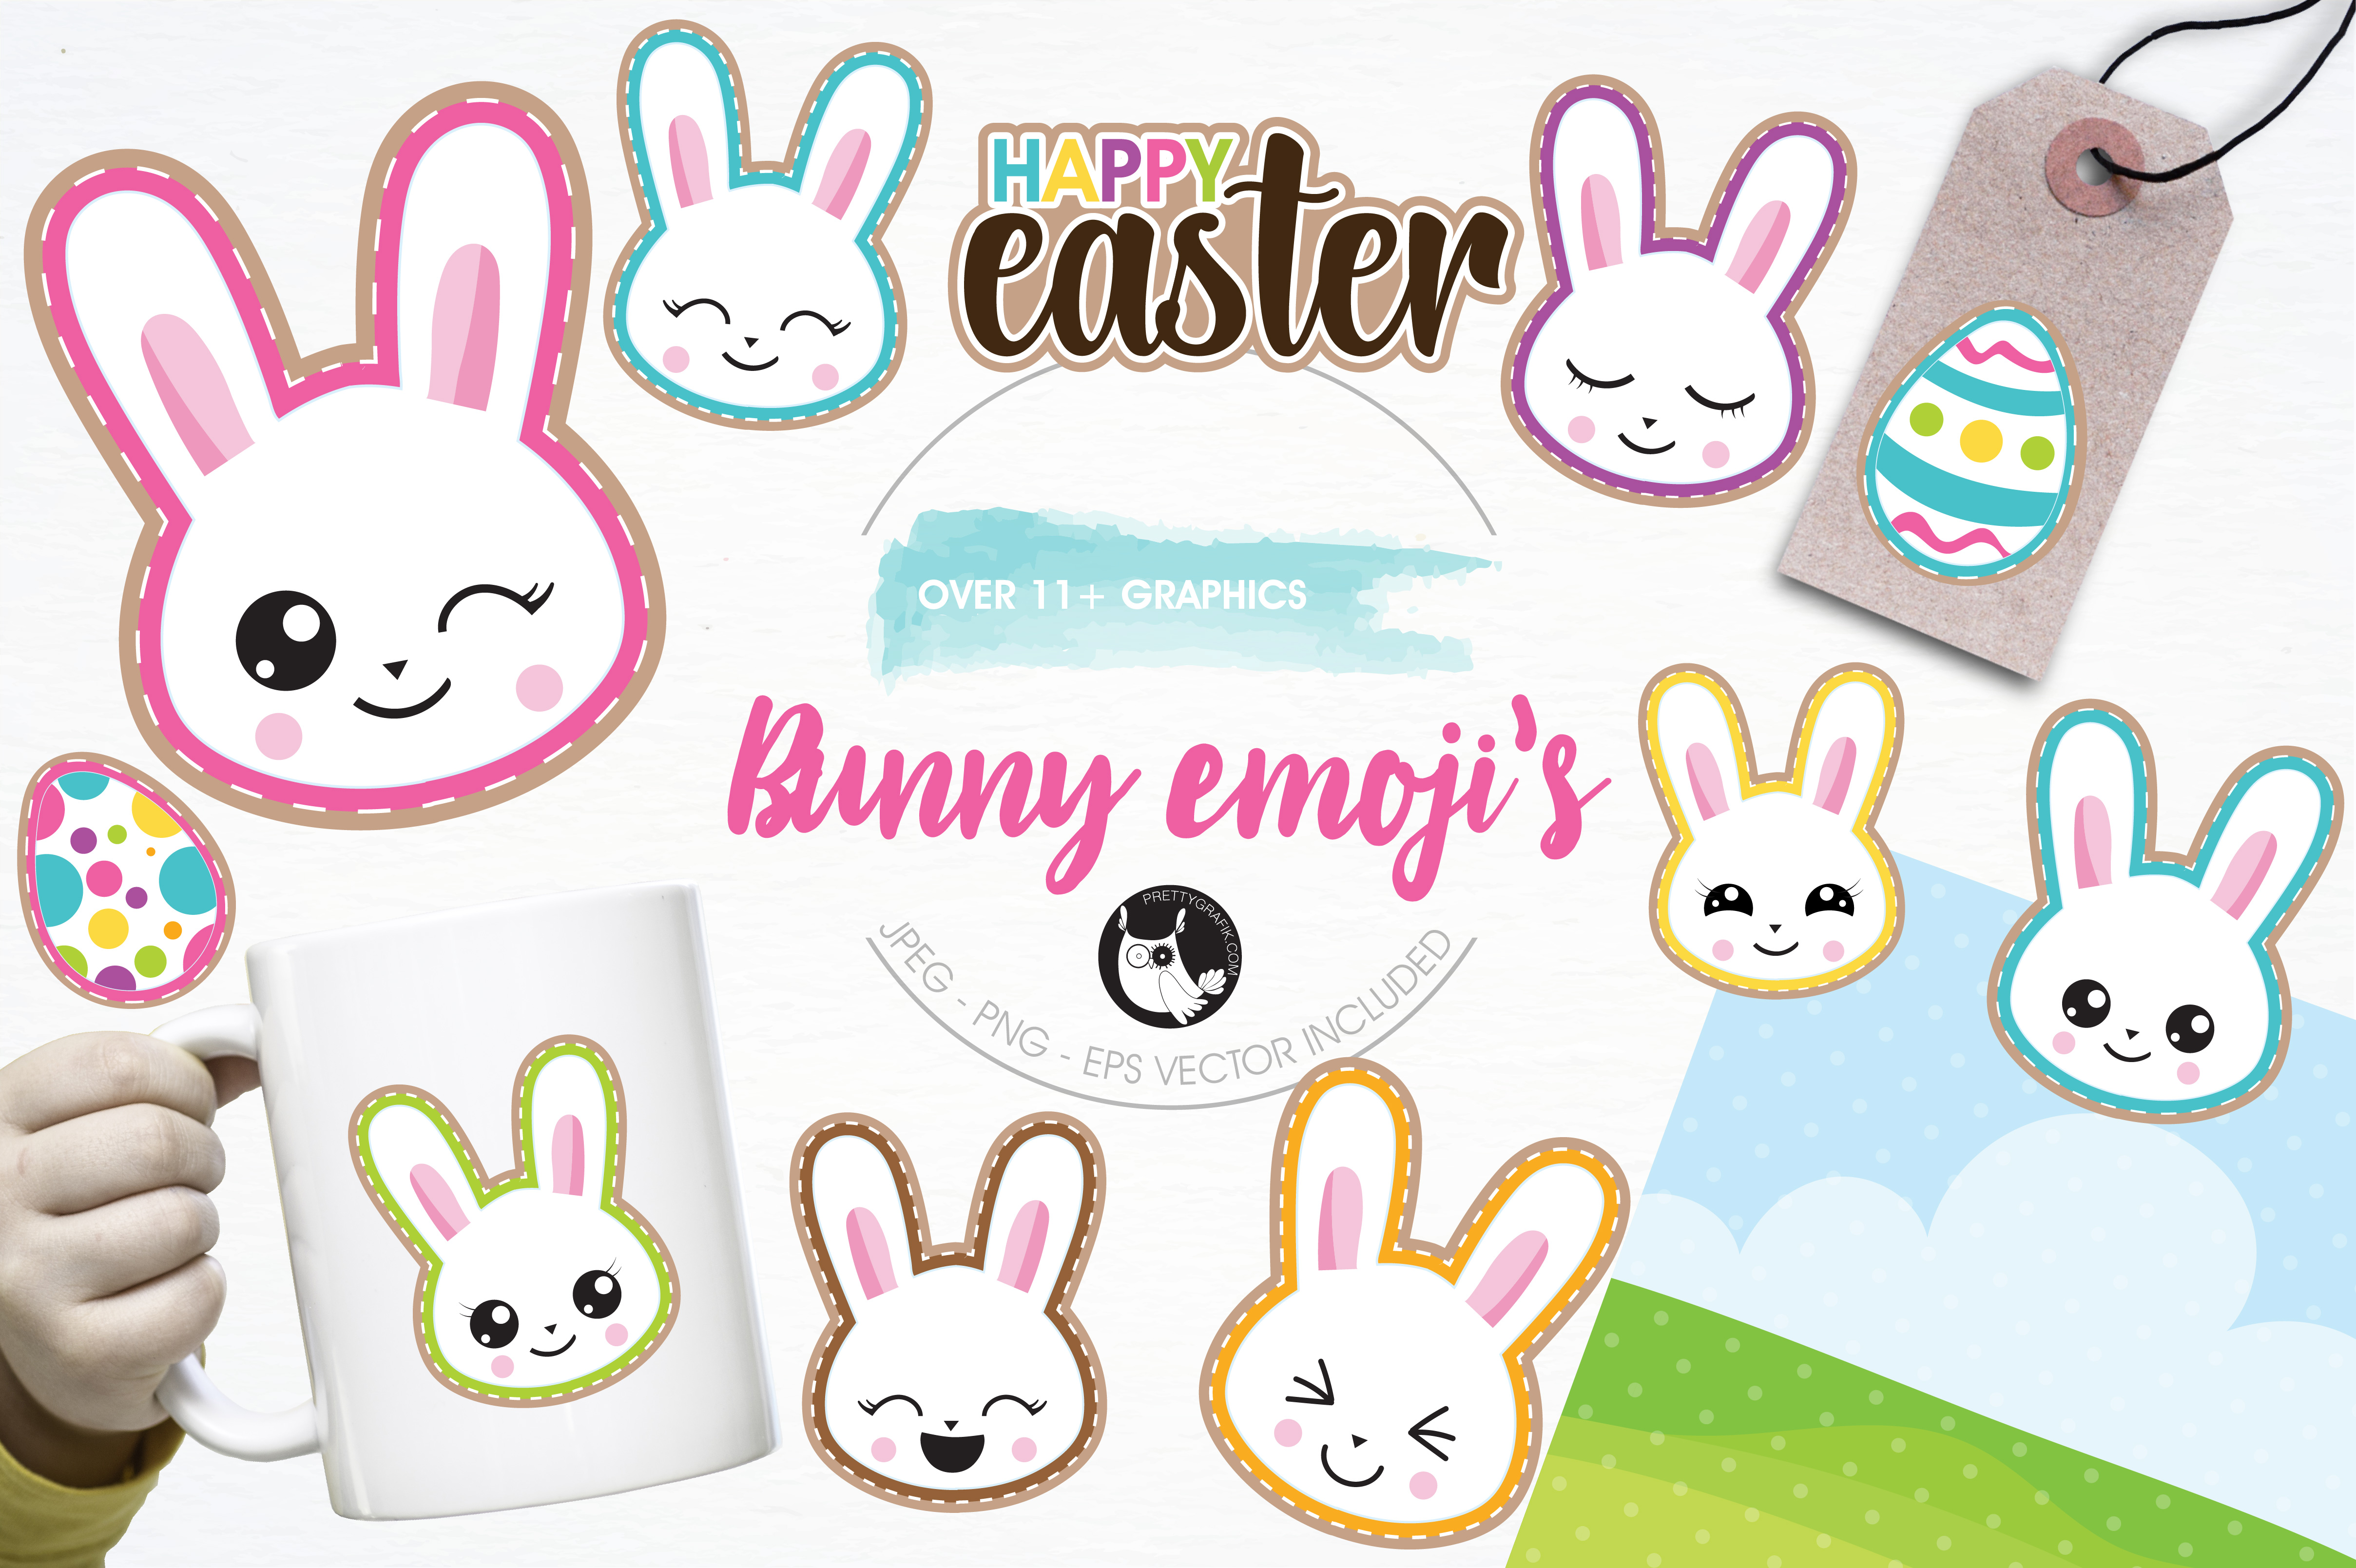 Download Free Cute Bunny Emoji S Graphic By Prettygrafik Creative Fabrica for Cricut Explore, Silhouette and other cutting machines.